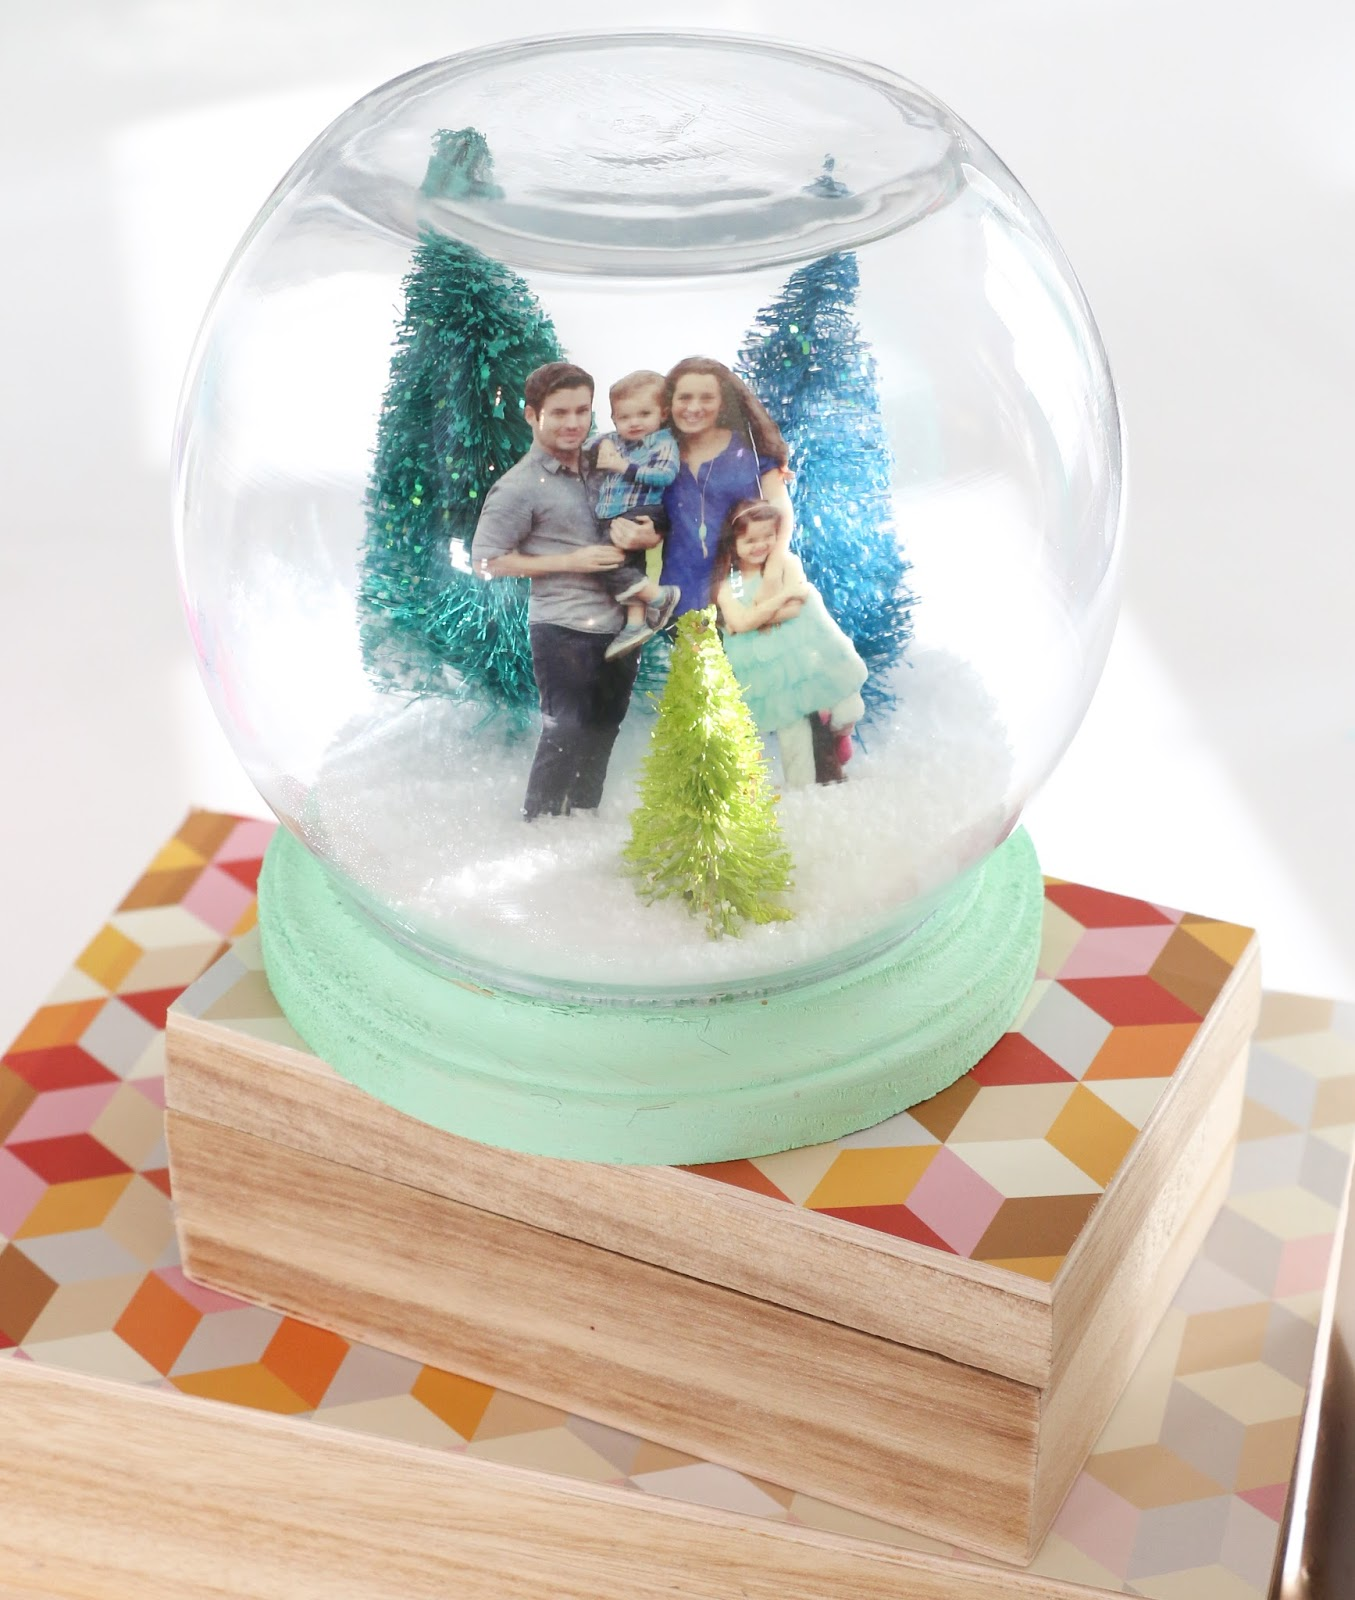 this year however i wanted to try something different so i decided to add a personalized touch to my diy snow globe and it turned out oh so cute